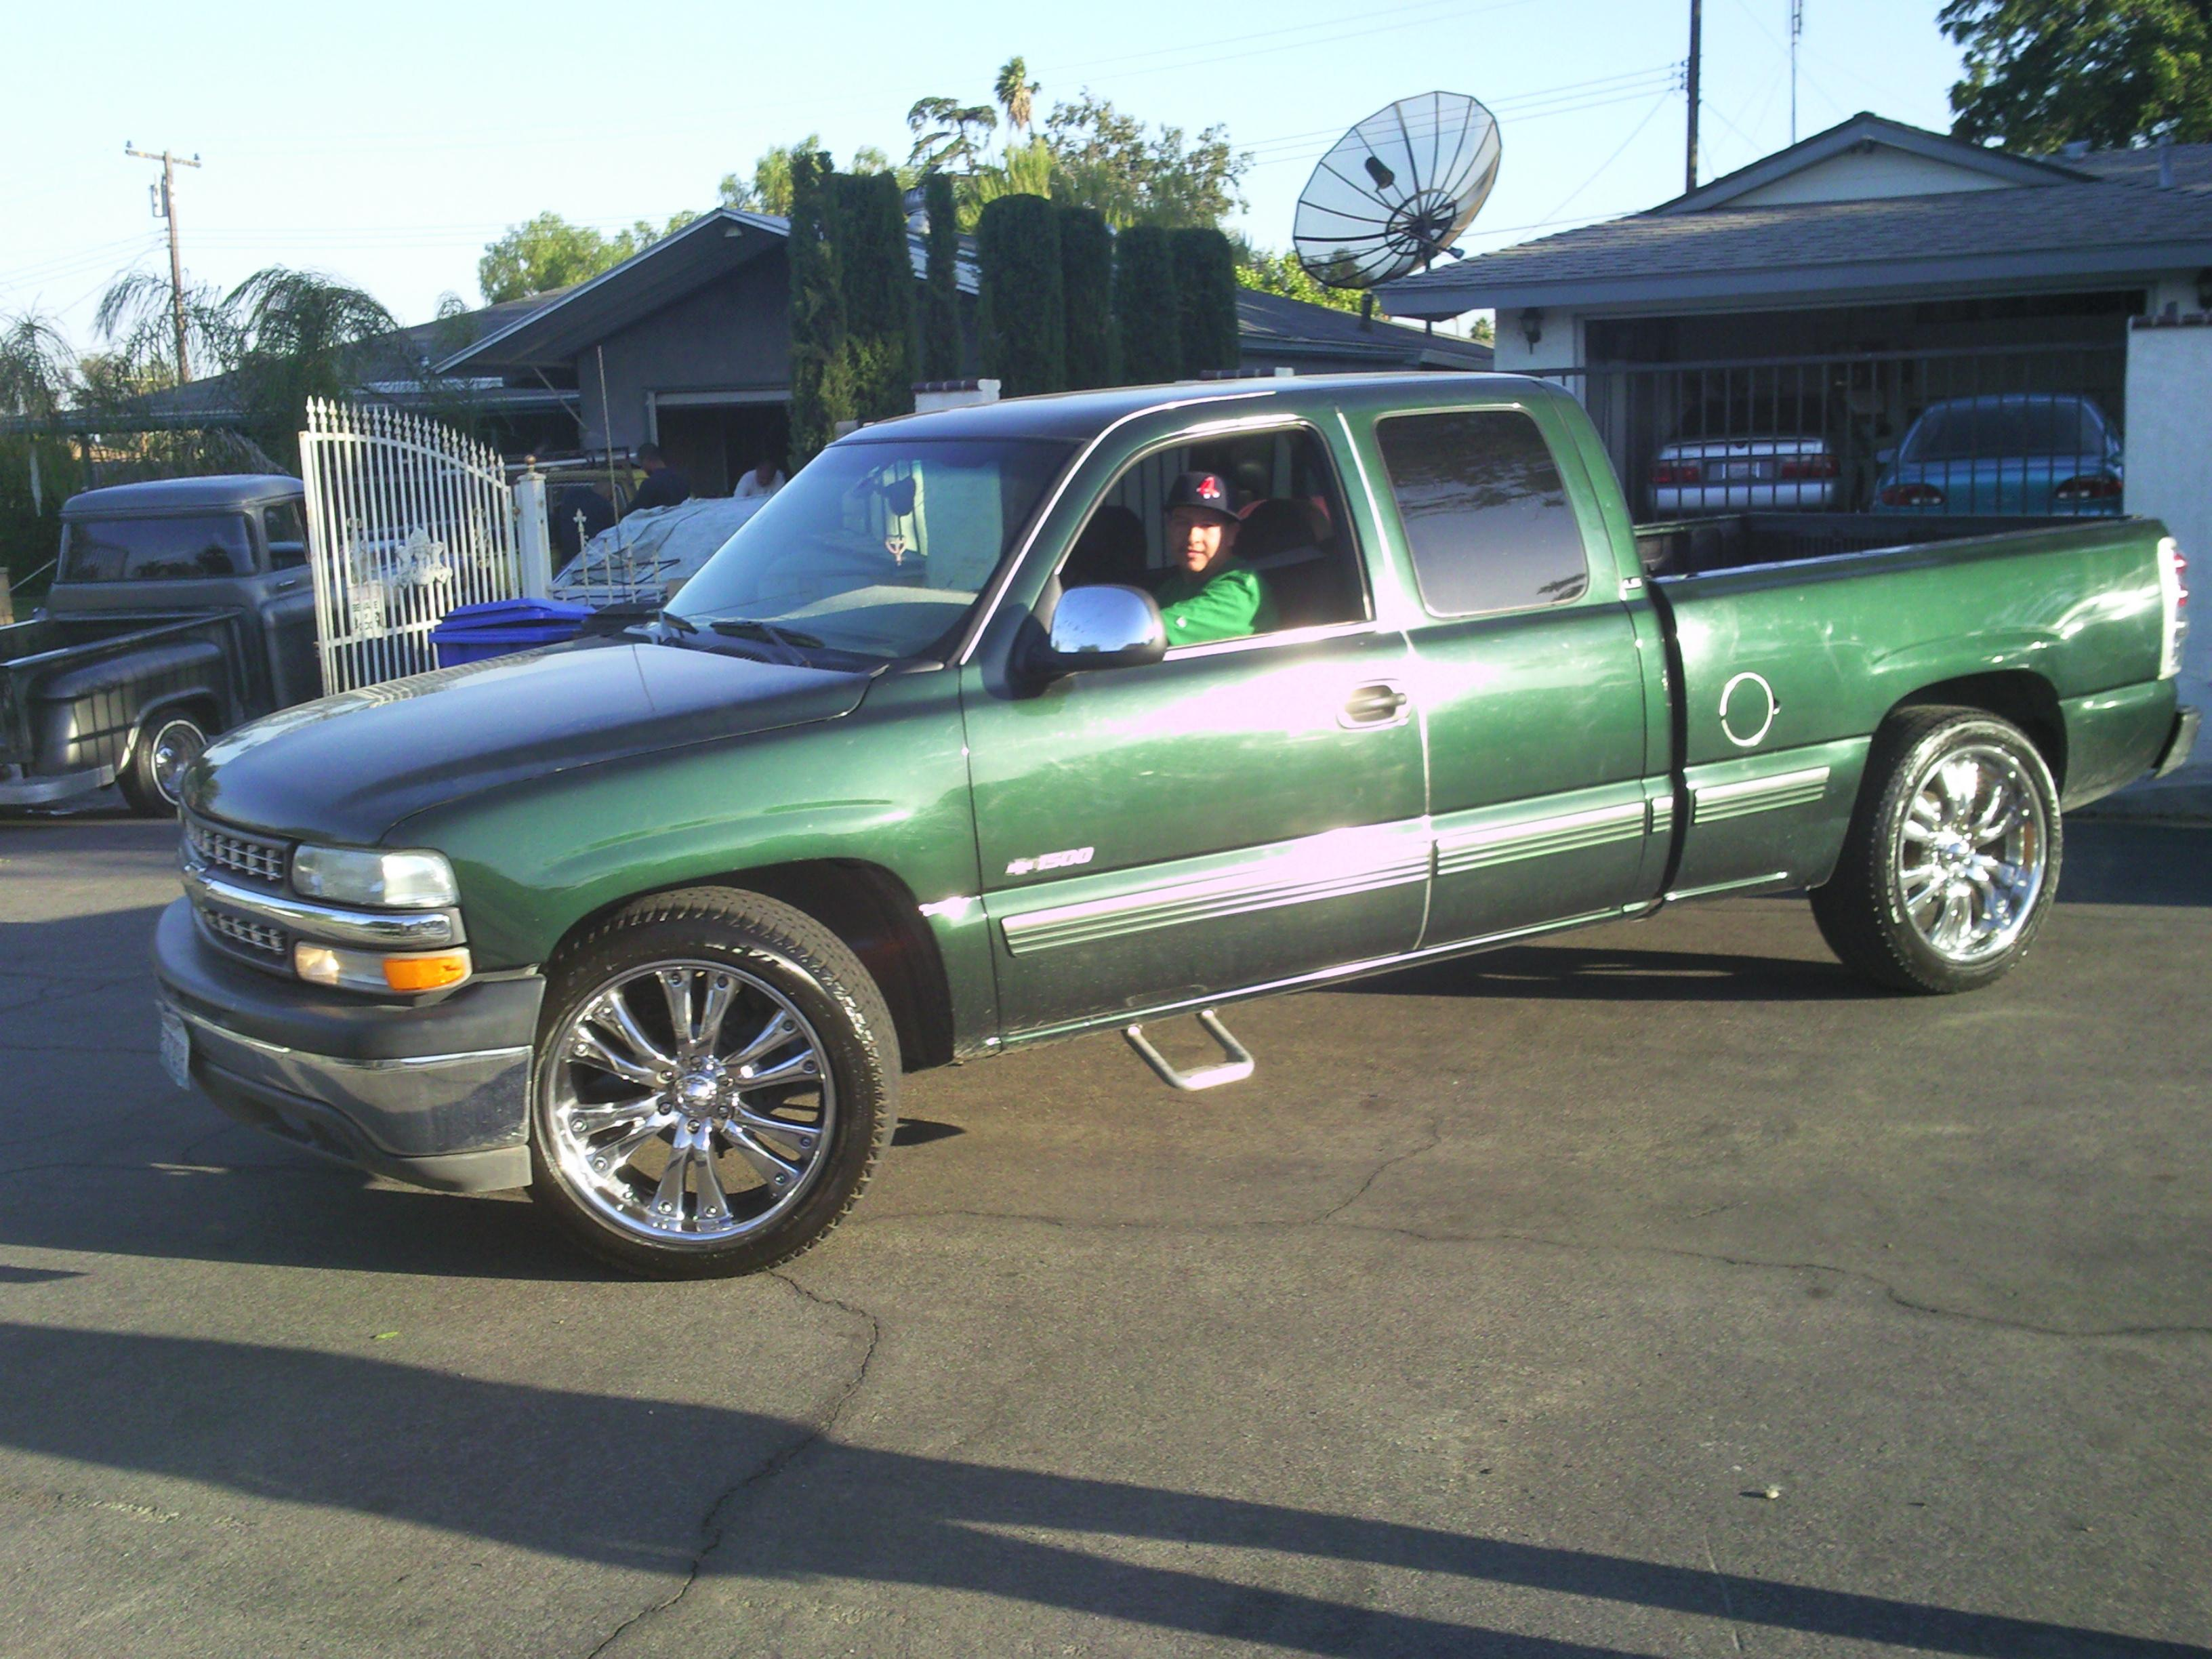 s10crewcab 2001 chevrolet silverado 1500 extended cabshort. Black Bedroom Furniture Sets. Home Design Ideas